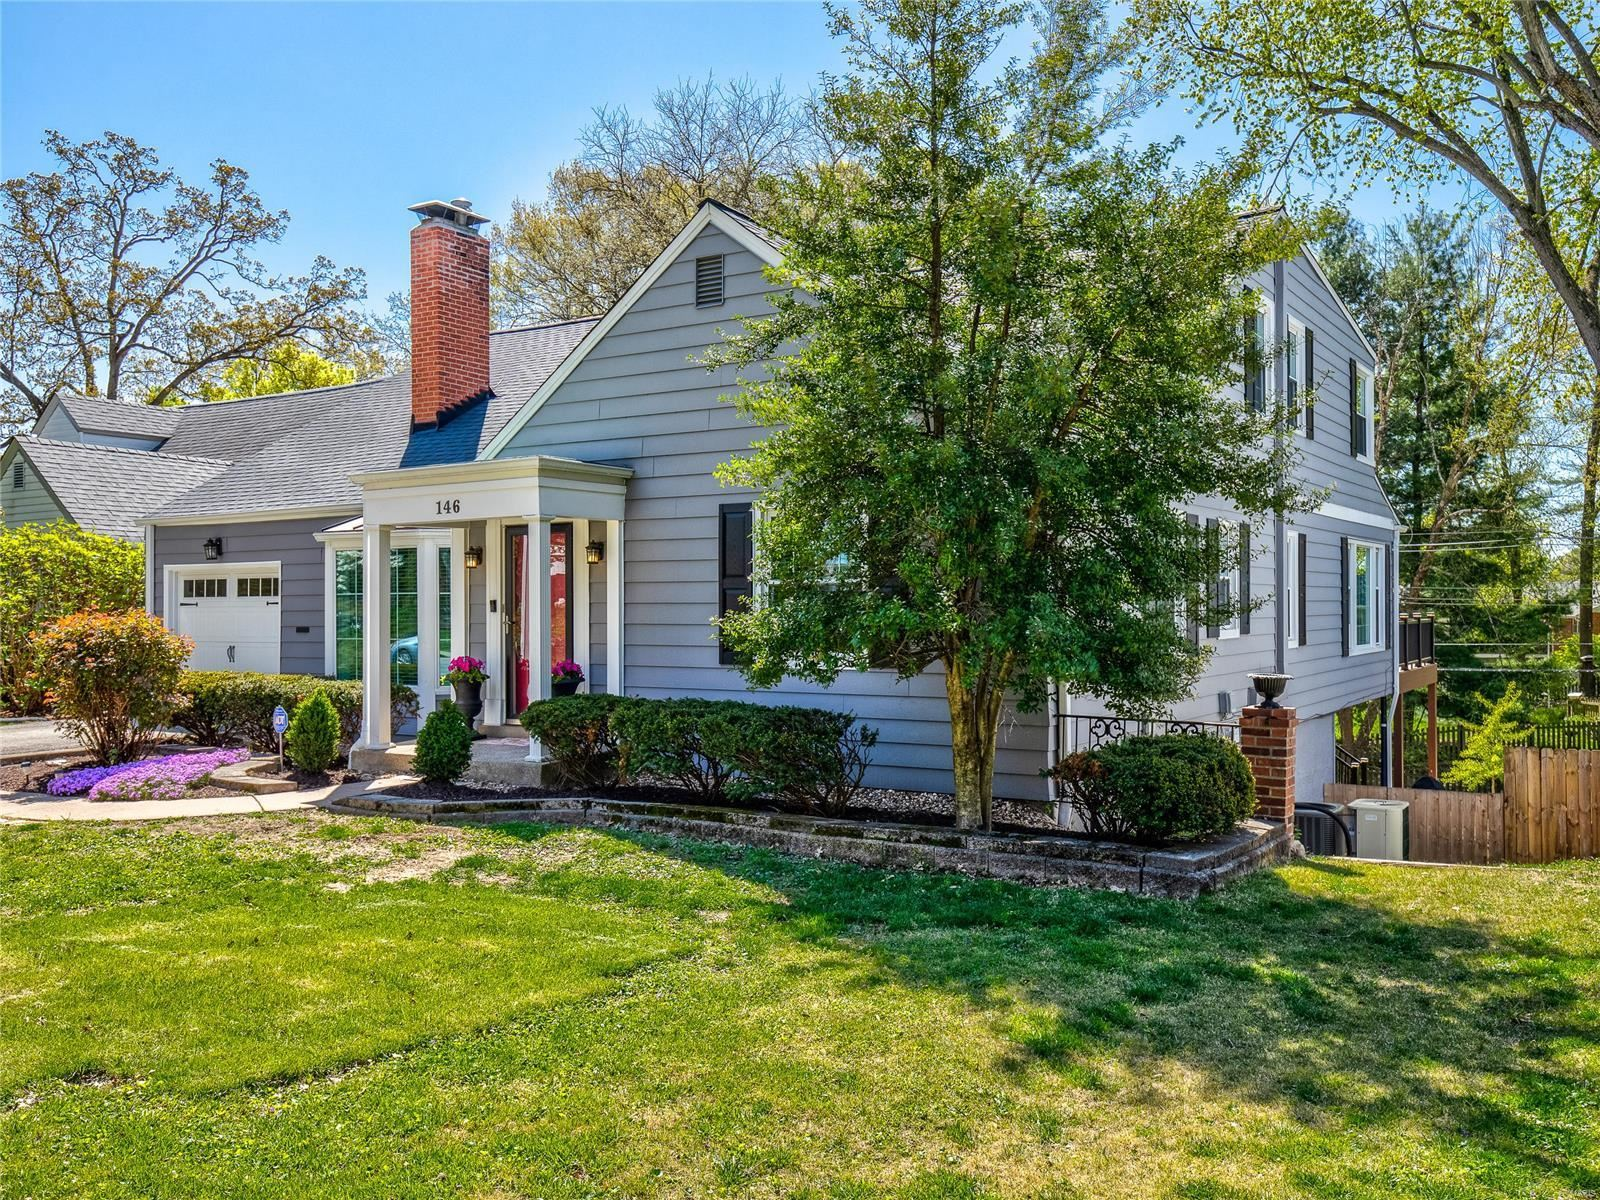 146 West Old Watson, Webster Groves, MO 63119 - MLS#: 20025265